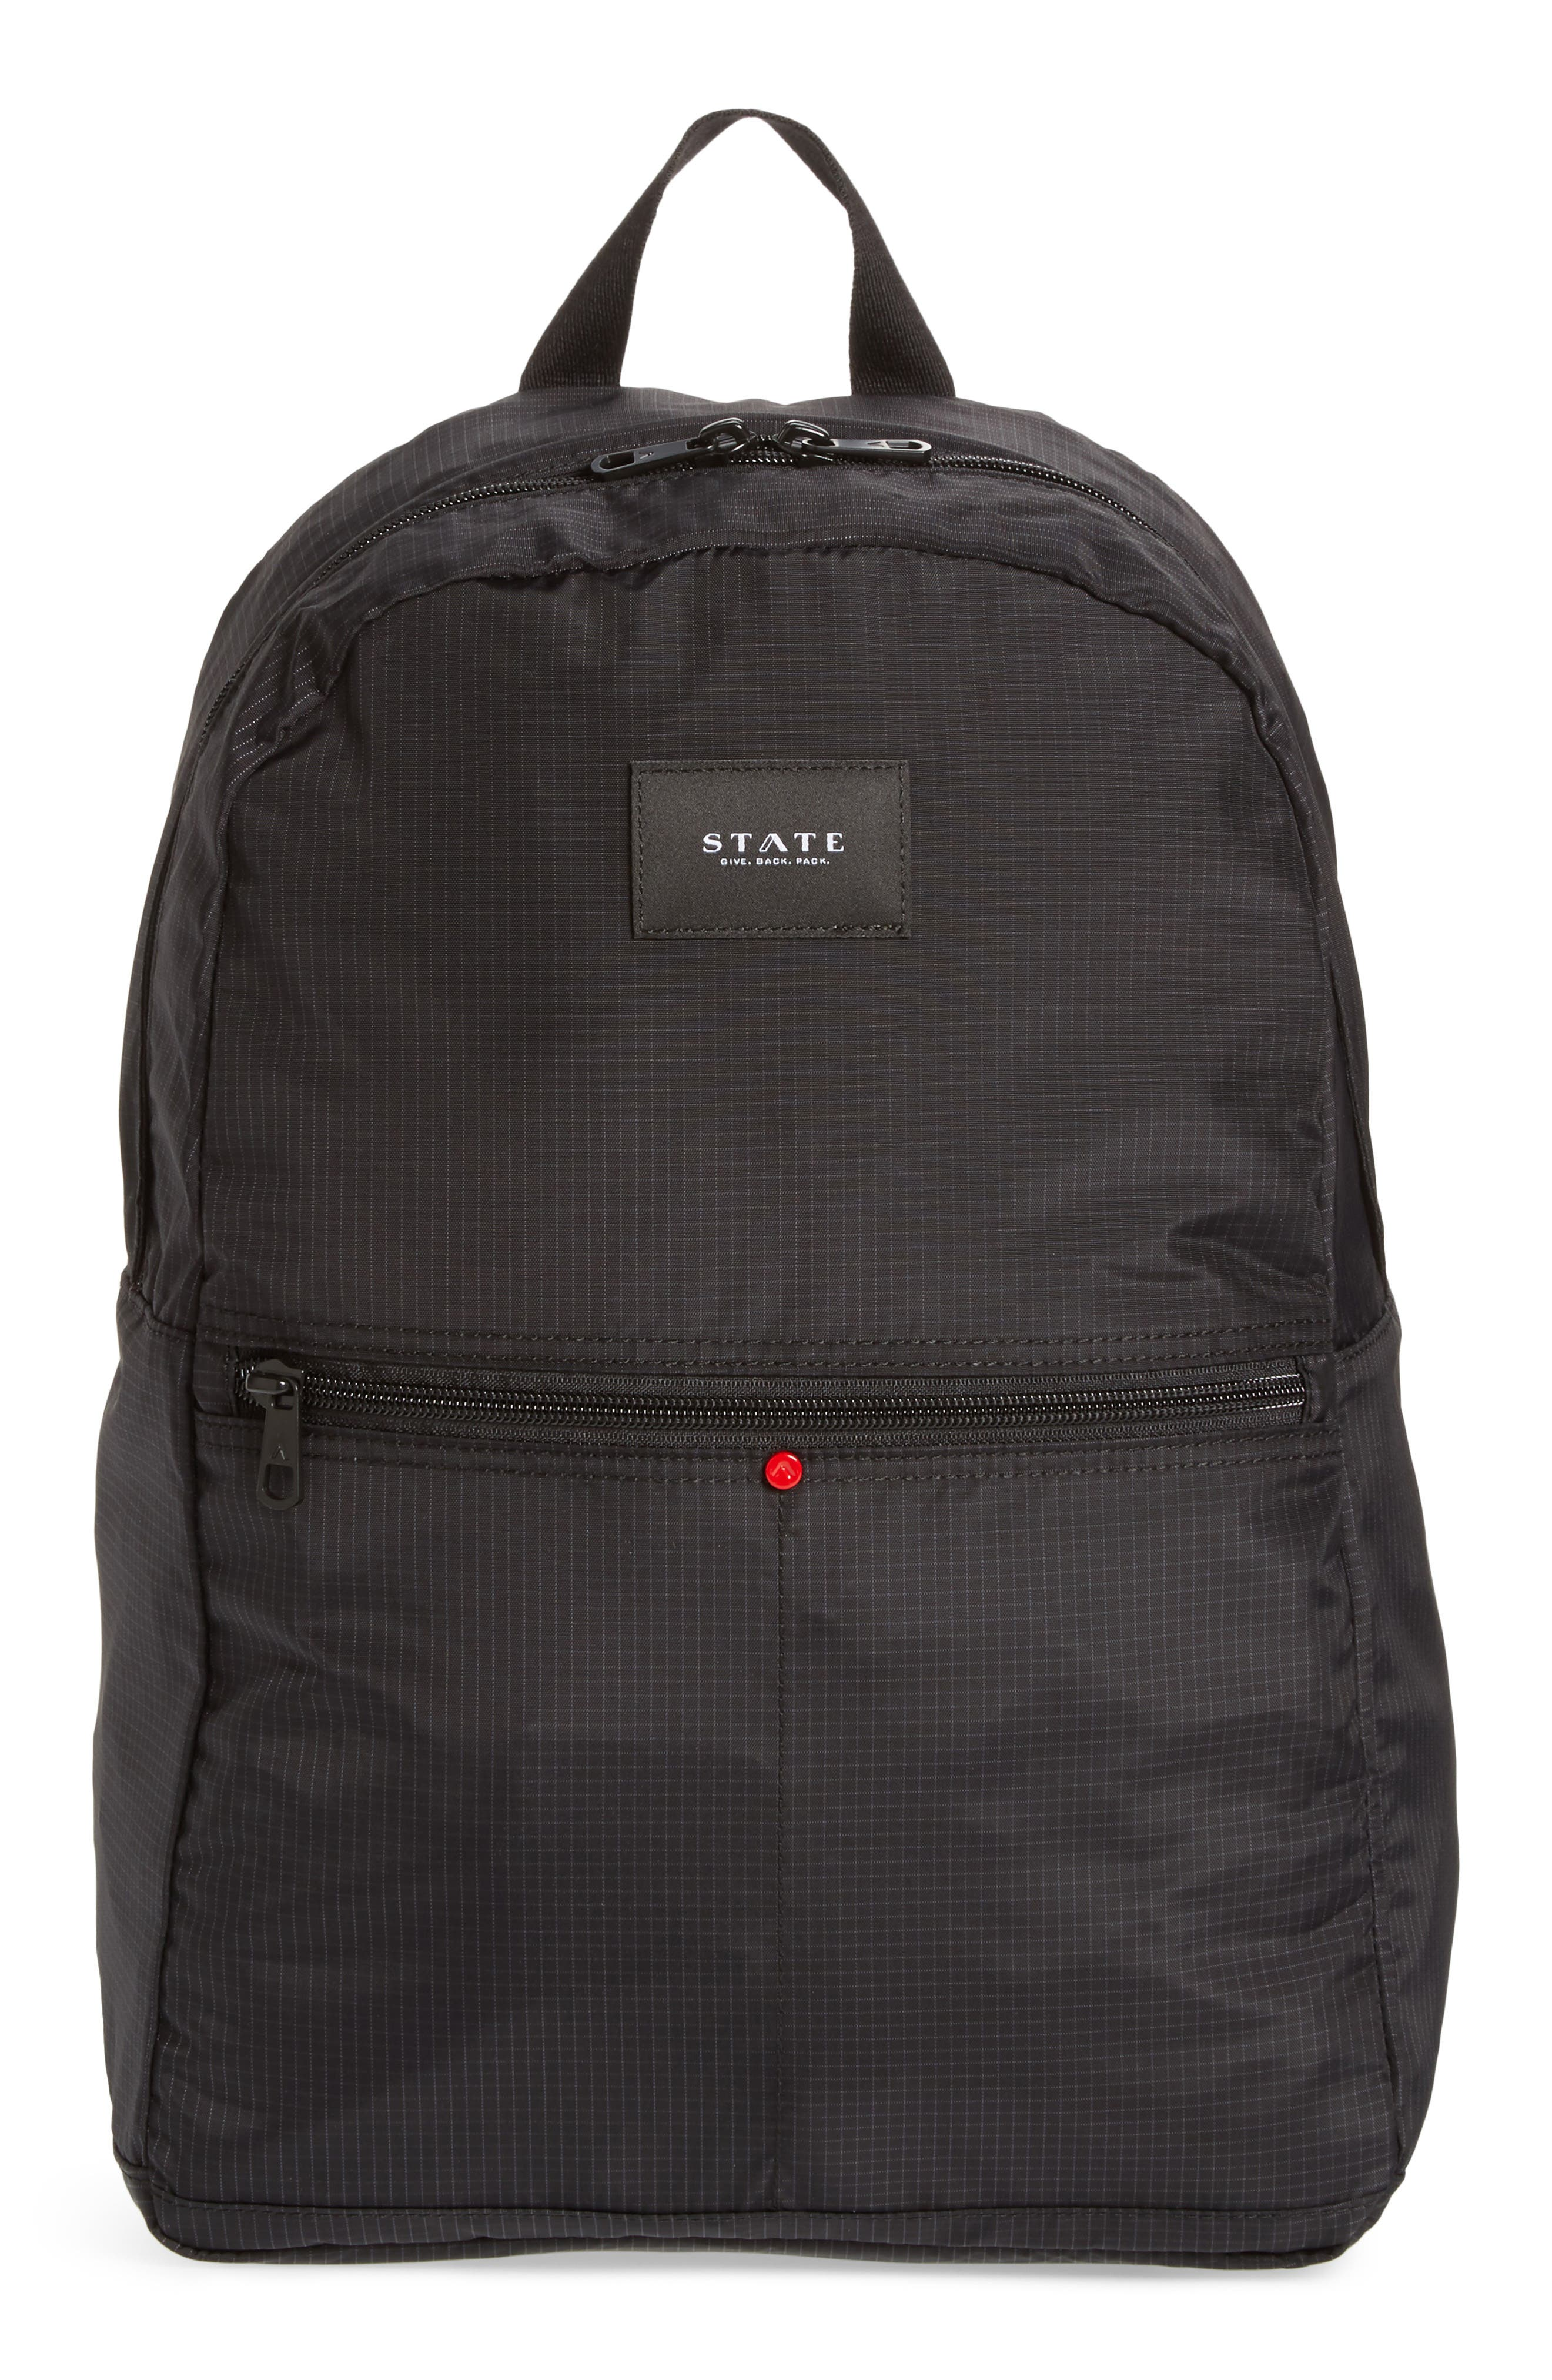 STATE Wyckoff Marshall Laptop Ripstop Backpack,                         Main,                         color, Black